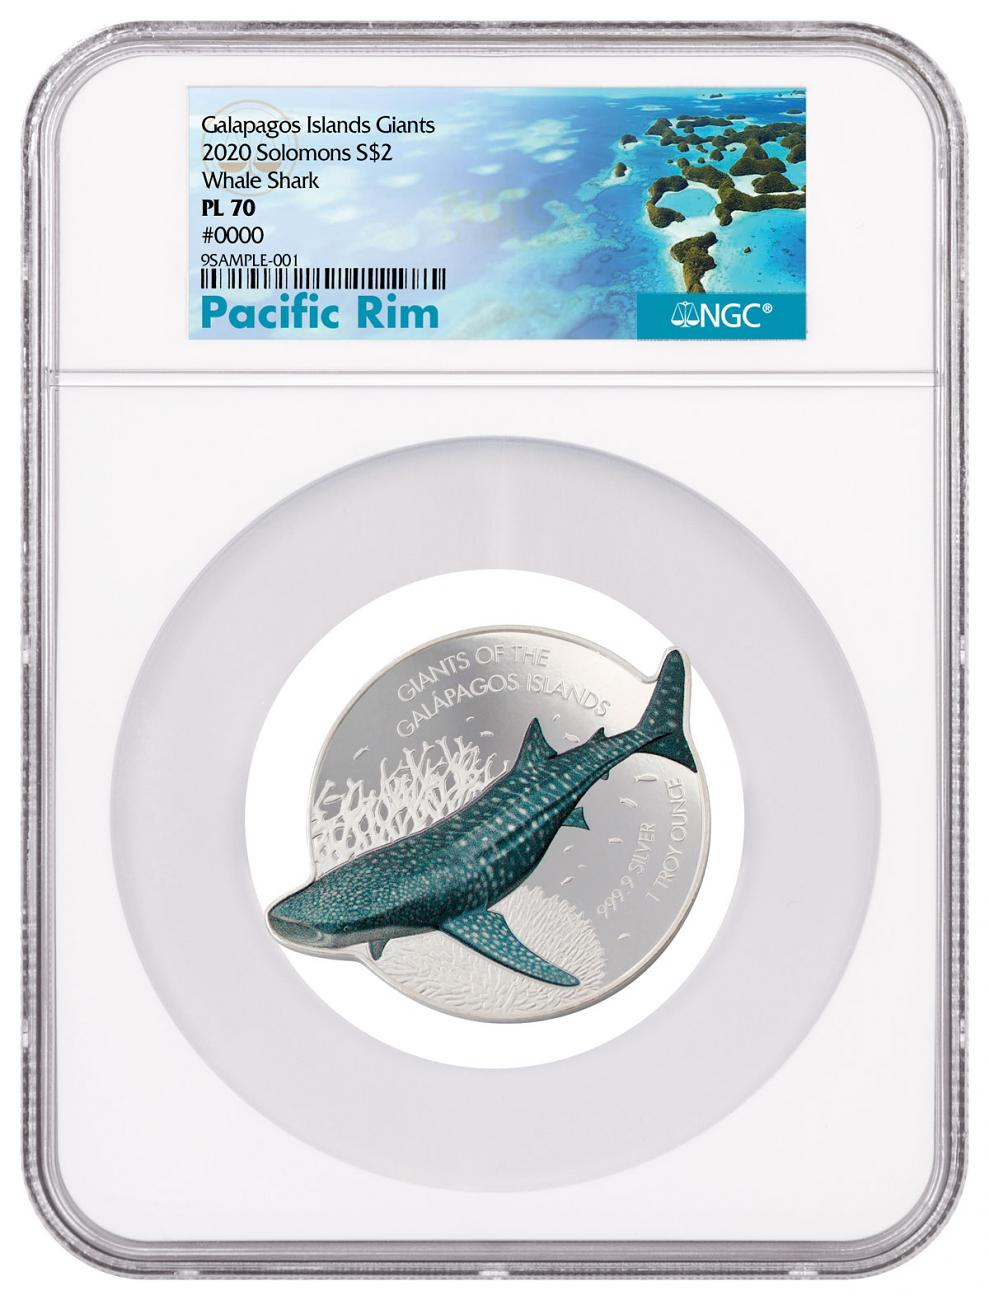 2021 Solomon Islands Giants of Galapagos - Whale Shark Shaped 1 oz Silver Proof Like $2 Coin NGC PL70 Exclusive Pacific Rim Label